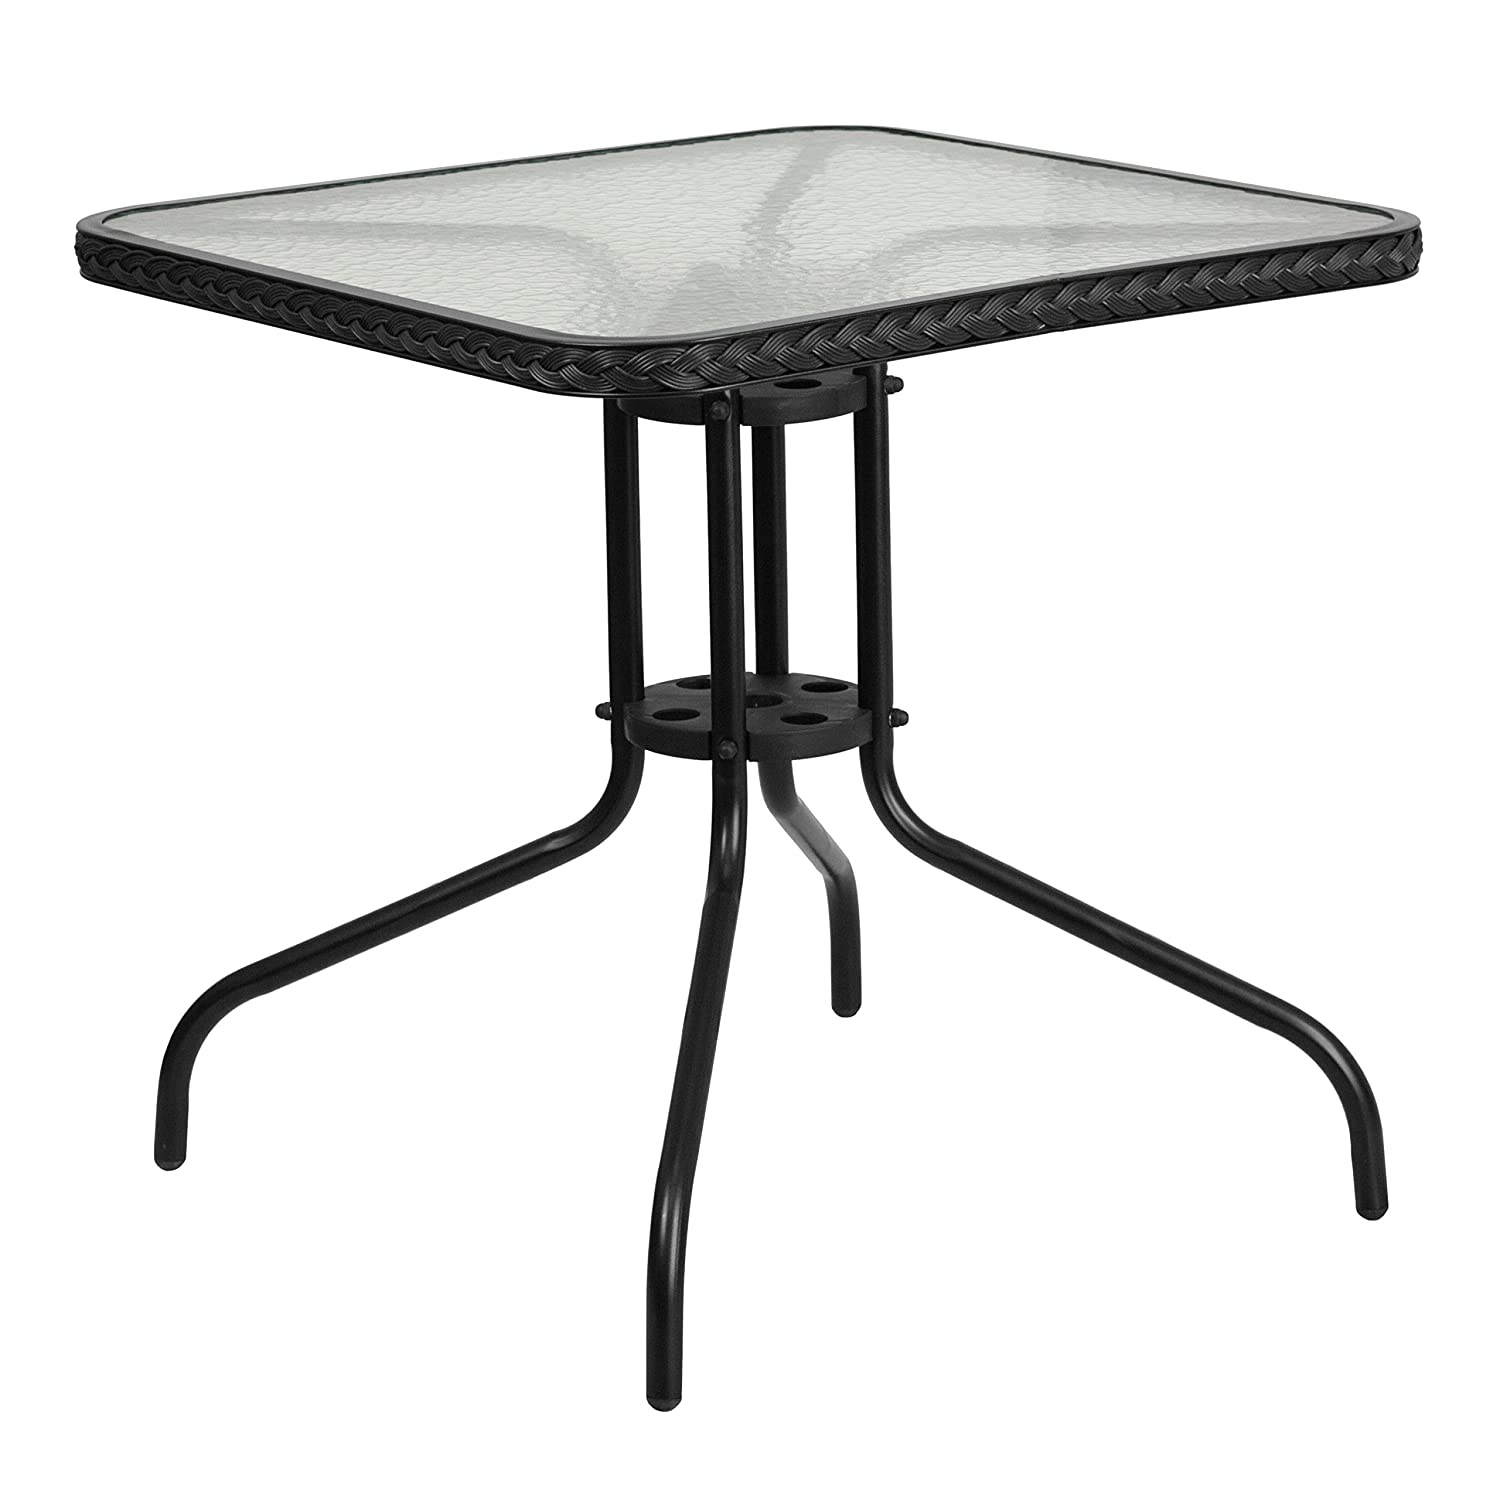 Flash Furniture 28'' Square Tempered Glass Metal Table with Black Rattan Edging